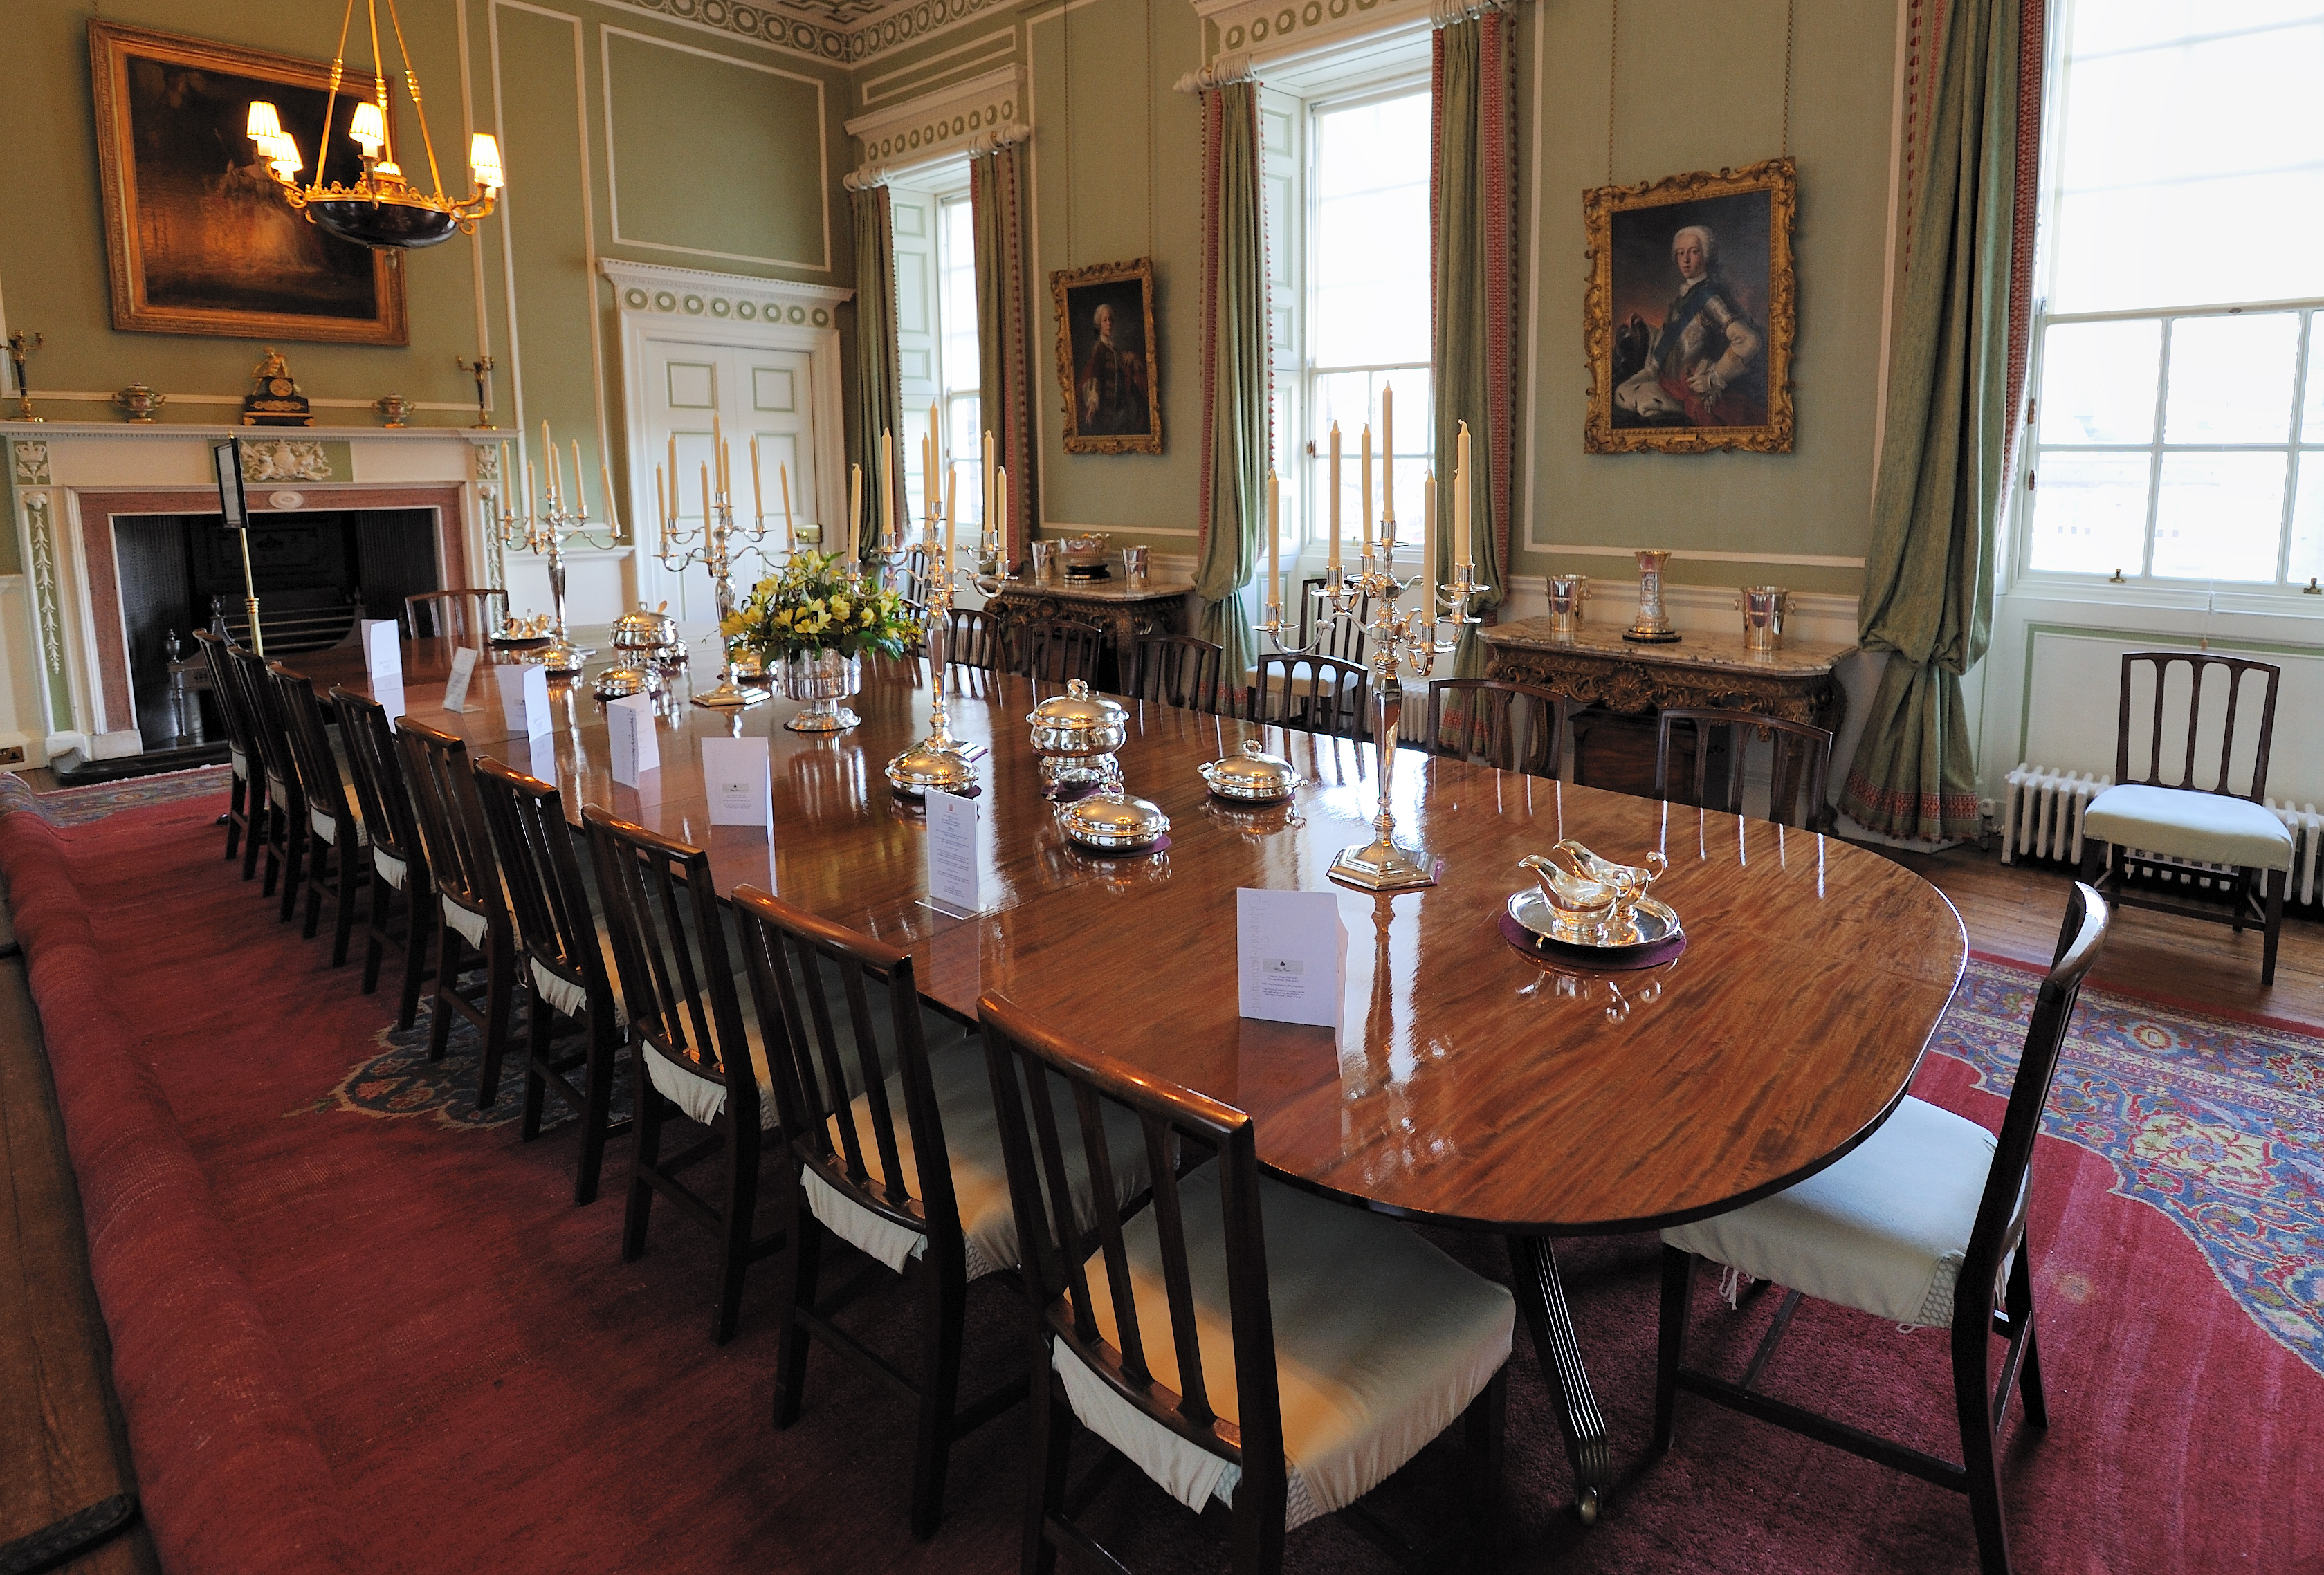 File:Holyrood Palace Dining Room.jpg - Wikimedia Commons